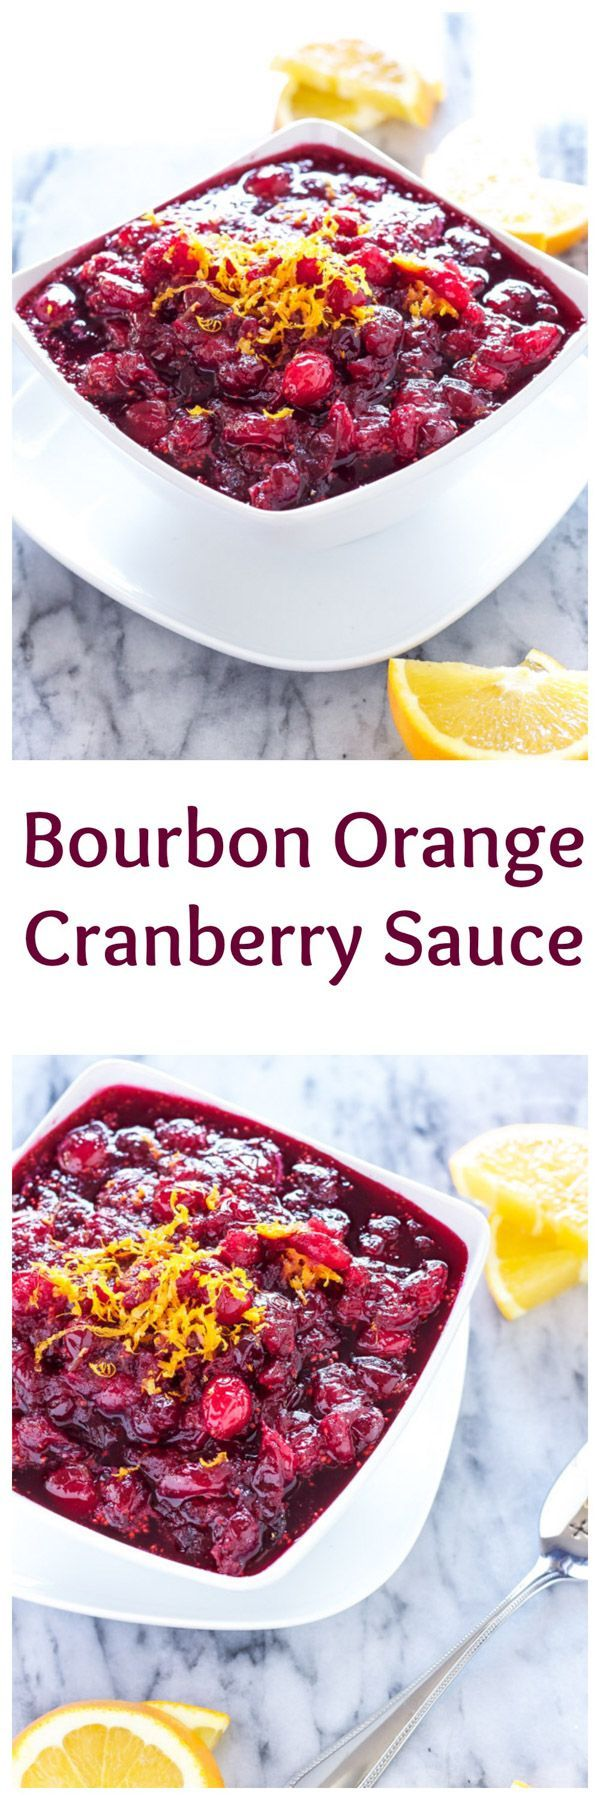 Bourbon Orange Cranberry Sauce | Recipe Runner | Add a burst of flavor to your cranberry sauce with sweet oranges and boozy bourbon!